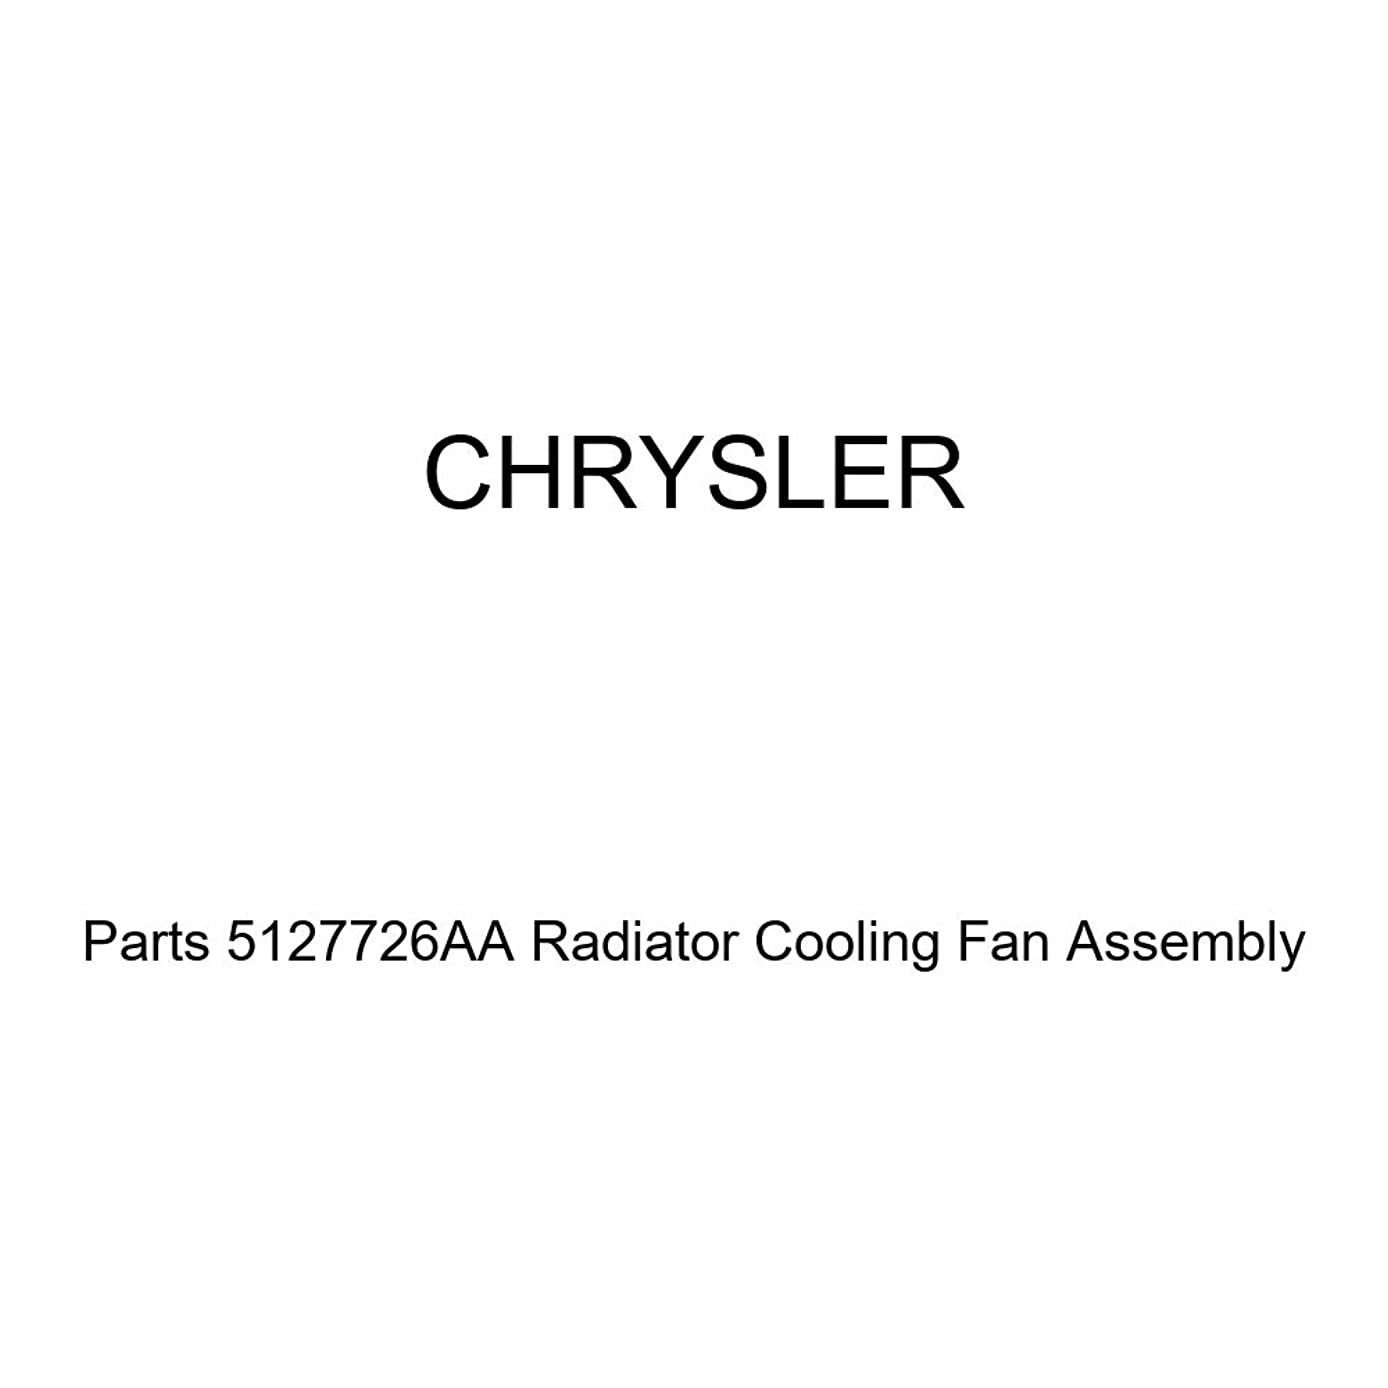 Genuine Chrysler Parts 5127726AA Radiator Cooling Fan Assembly